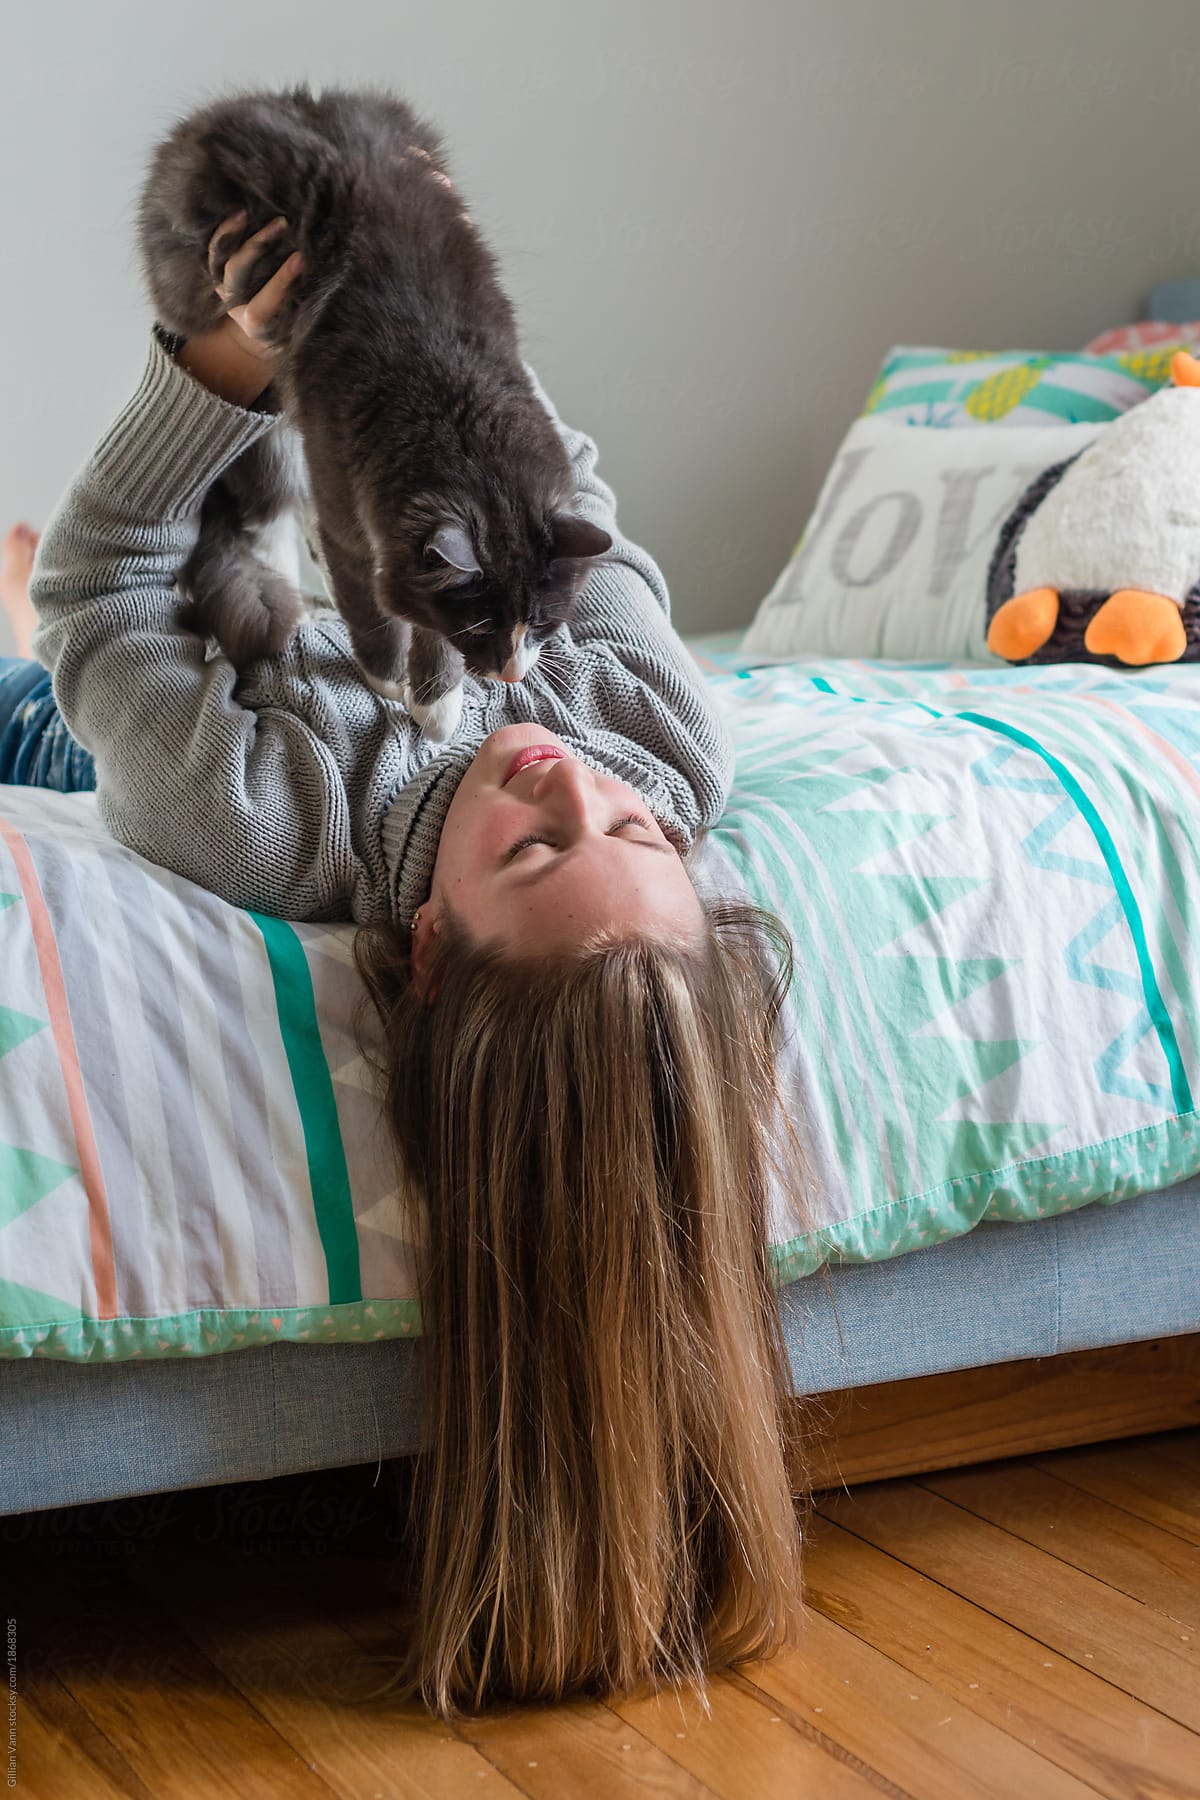 fcf205ff00f0 Teen Girl In Bedroom With Her Cat